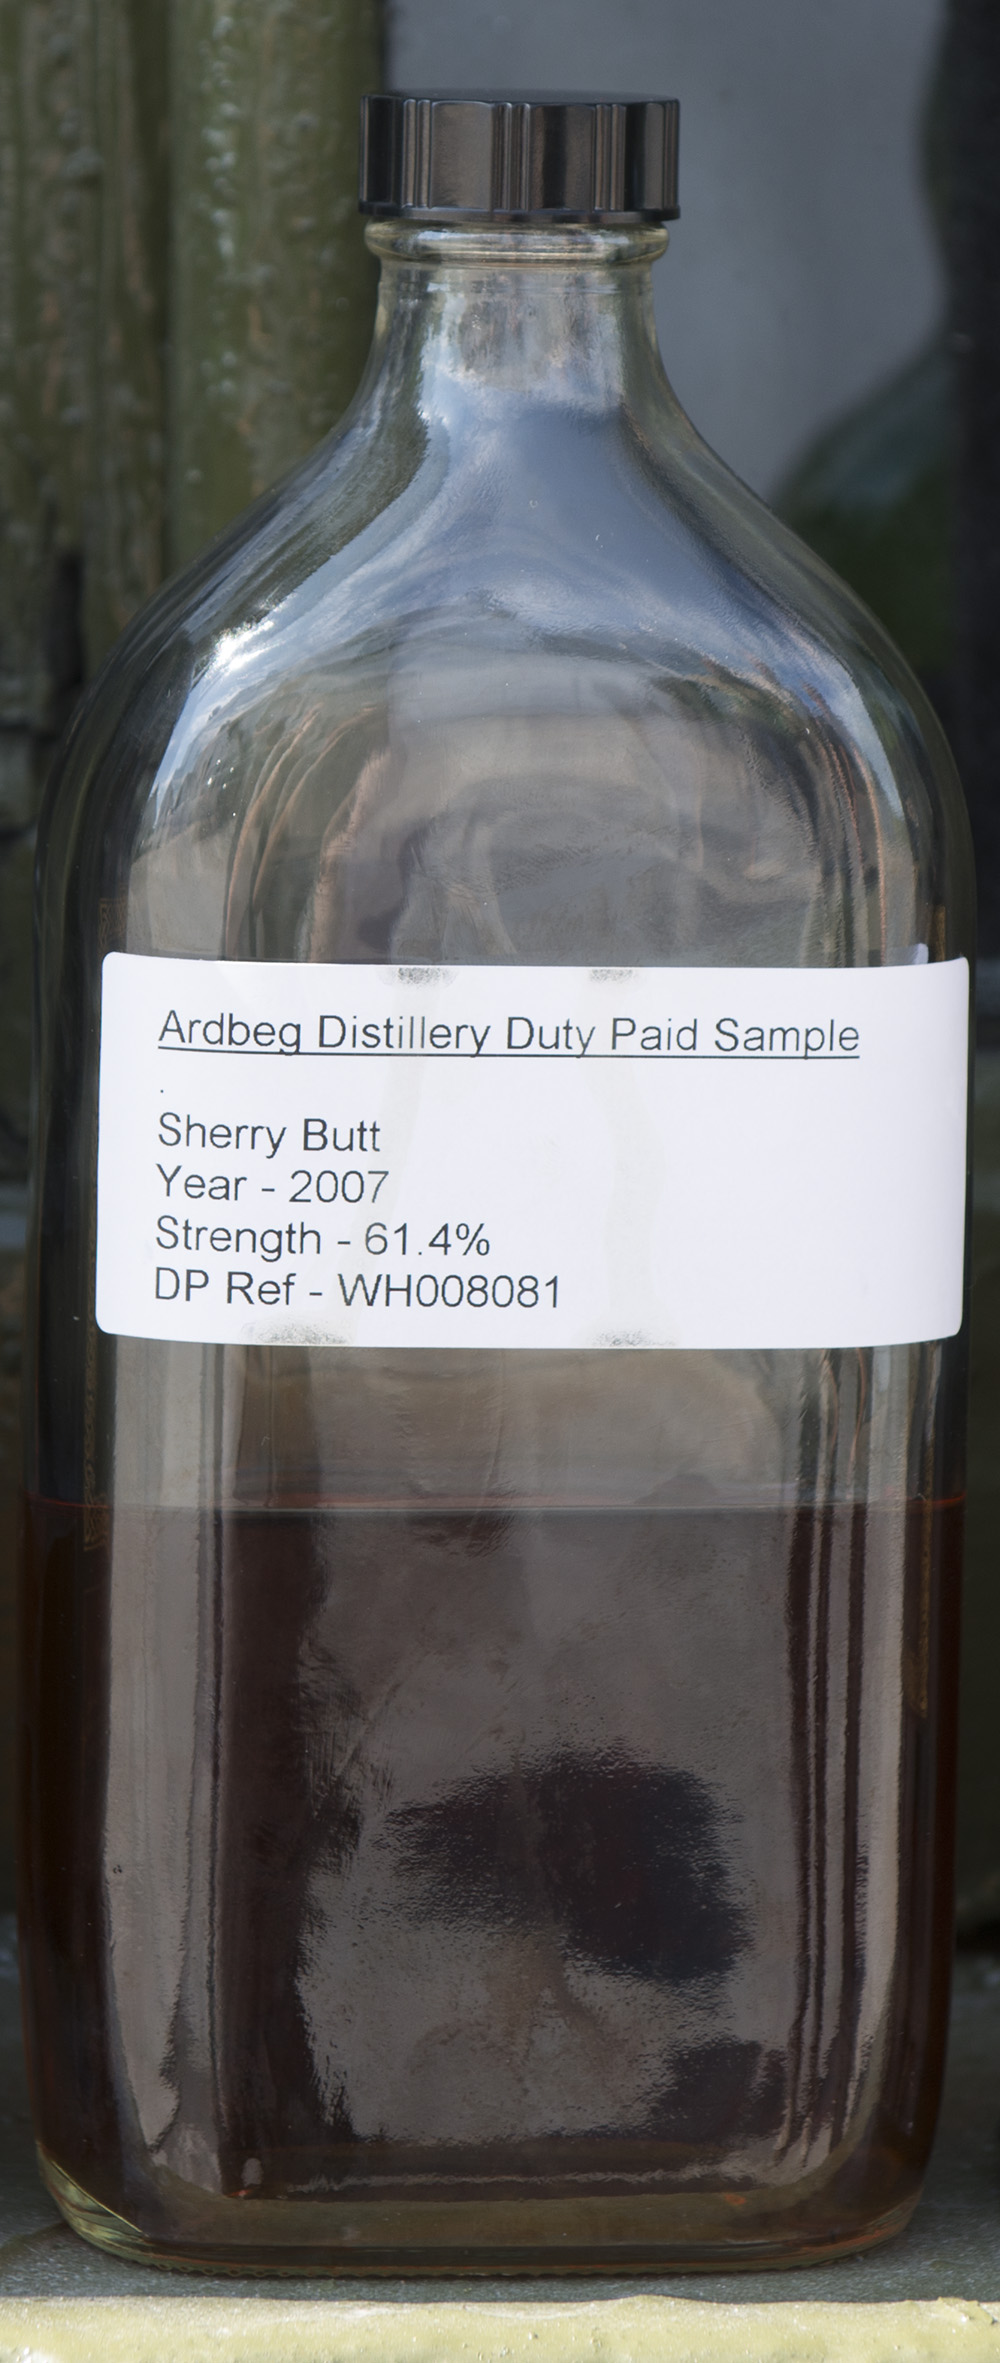 Billede: Ardbeg 2007 cask sample from Sherry Butt.jpg